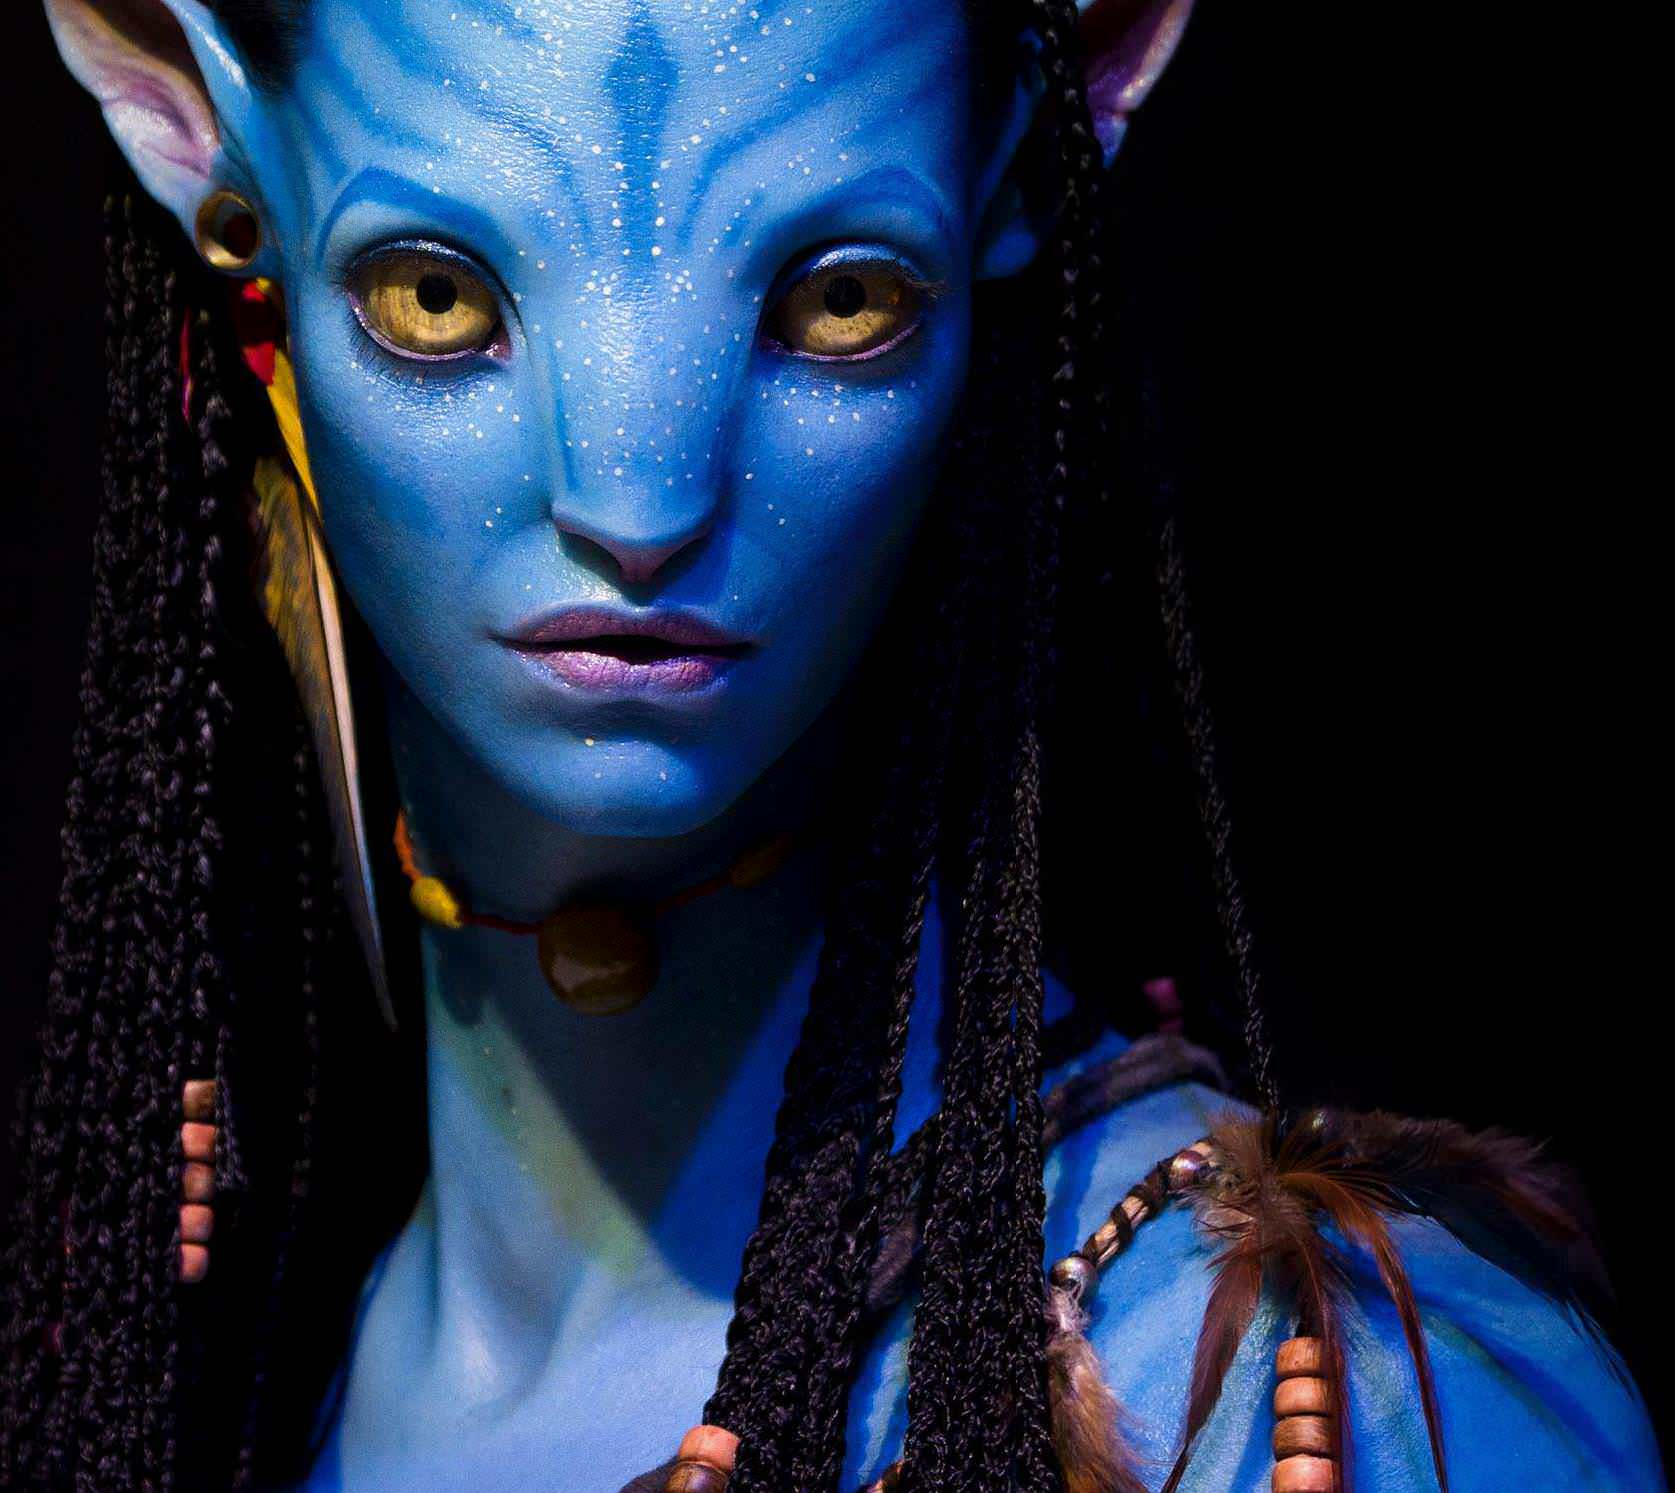 Avatar Sequel: 'Avatar' Sequels Now Scheduled To Start In December 2020